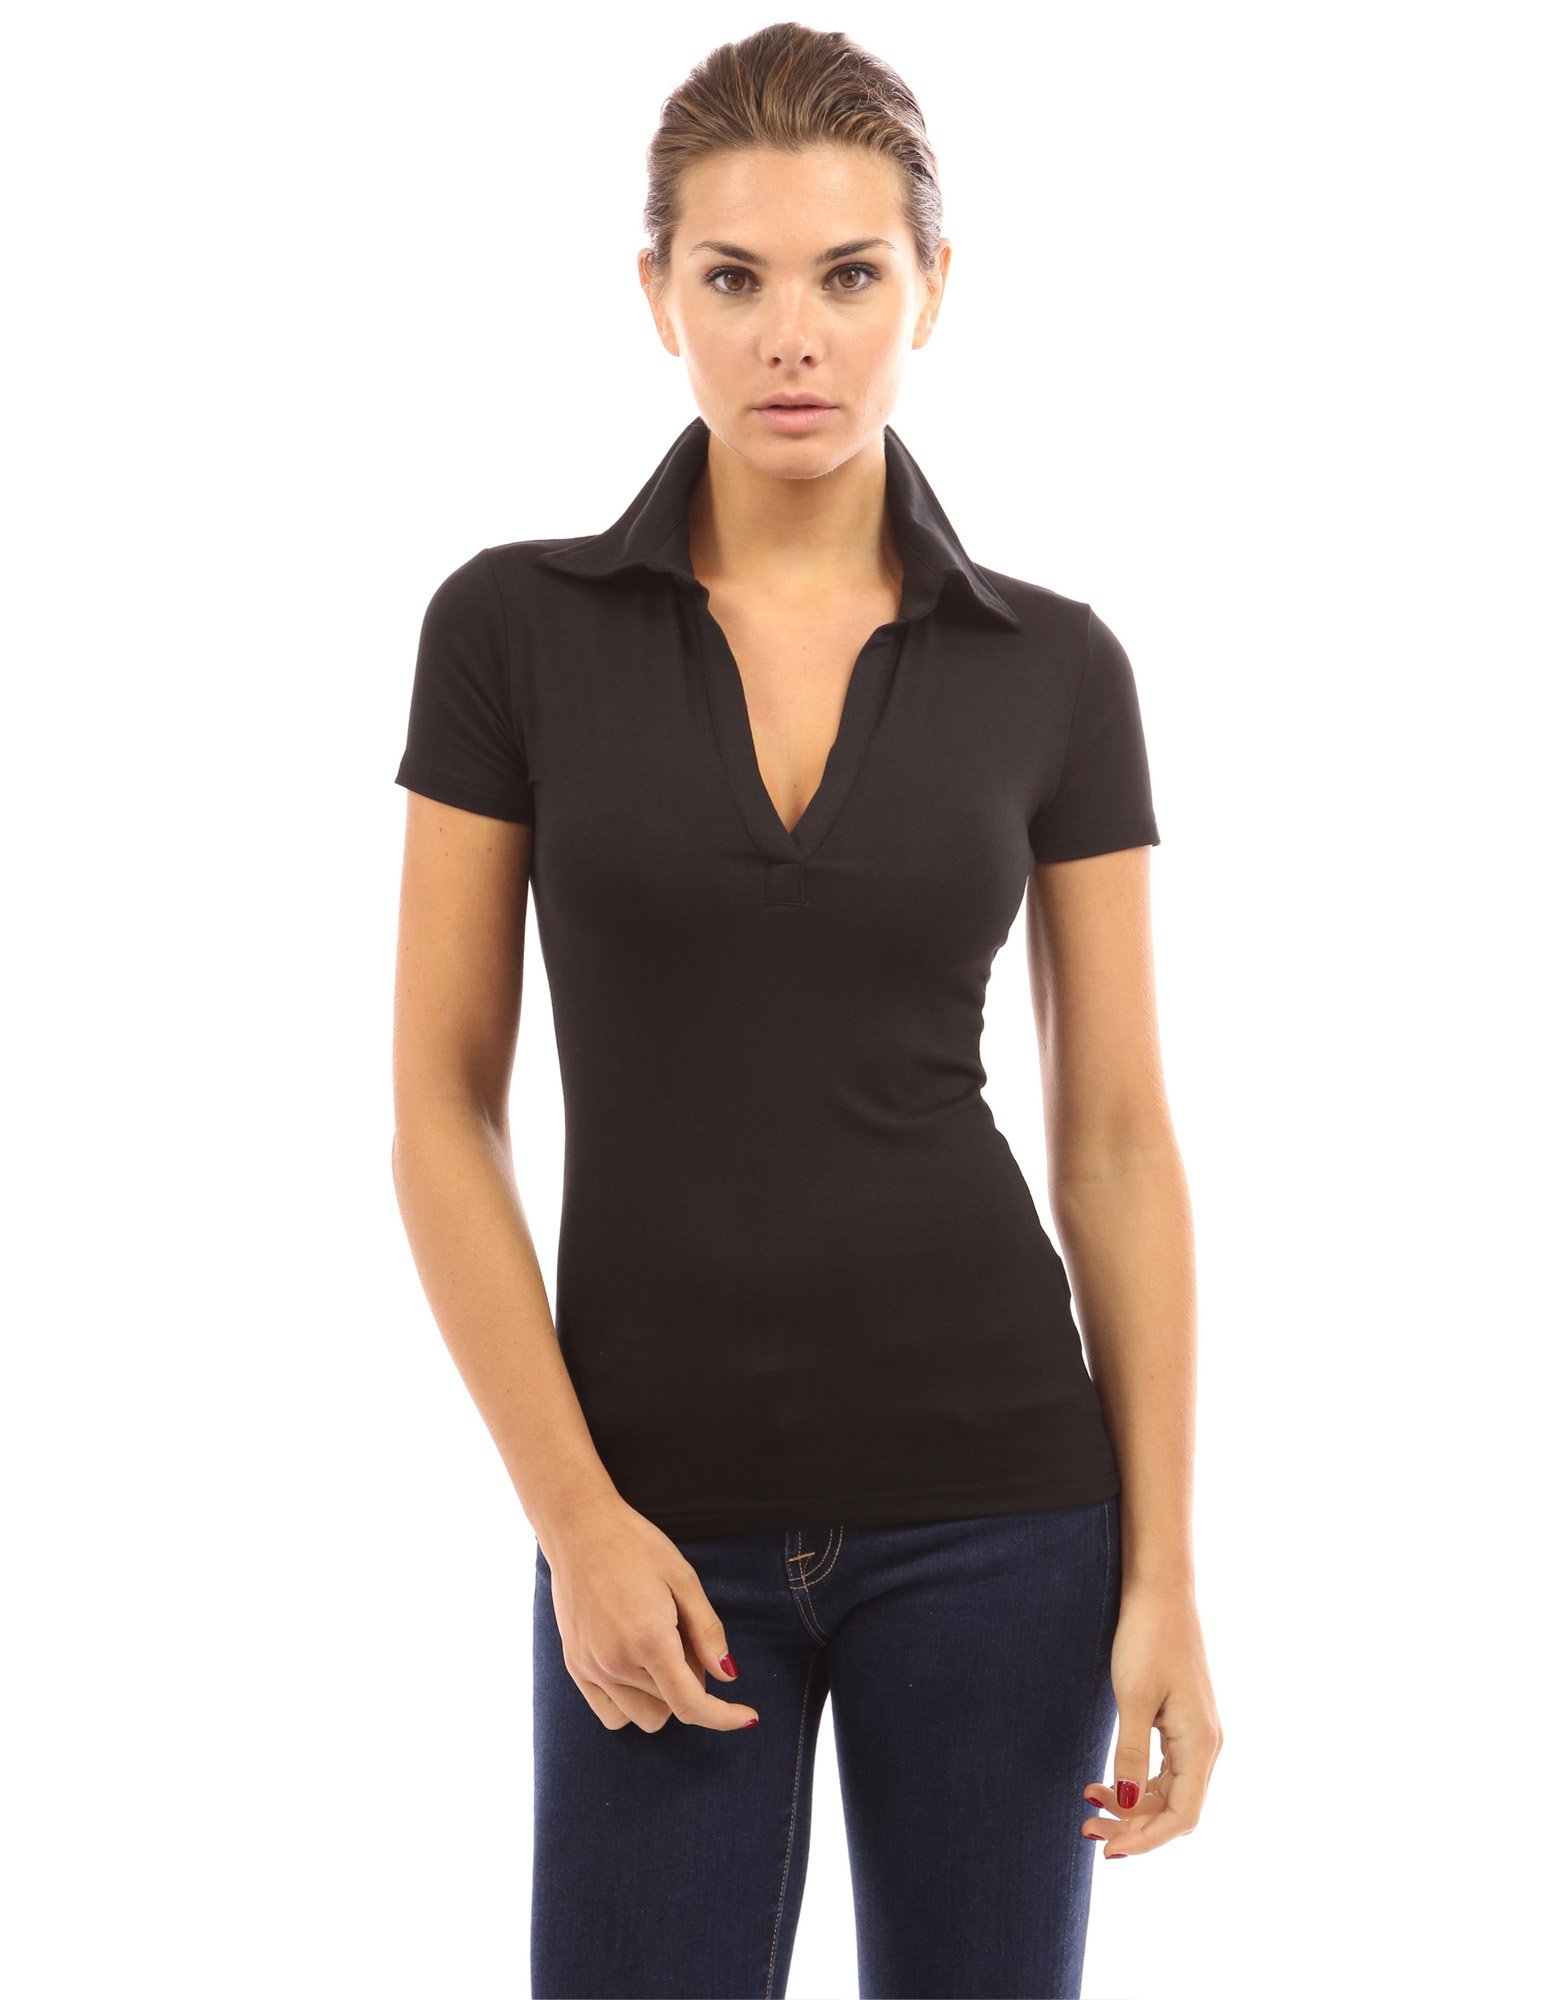 PattyBoutik Women V Neck Short Sleeve Polo Shirt (Black Medium) by PattyBoutik